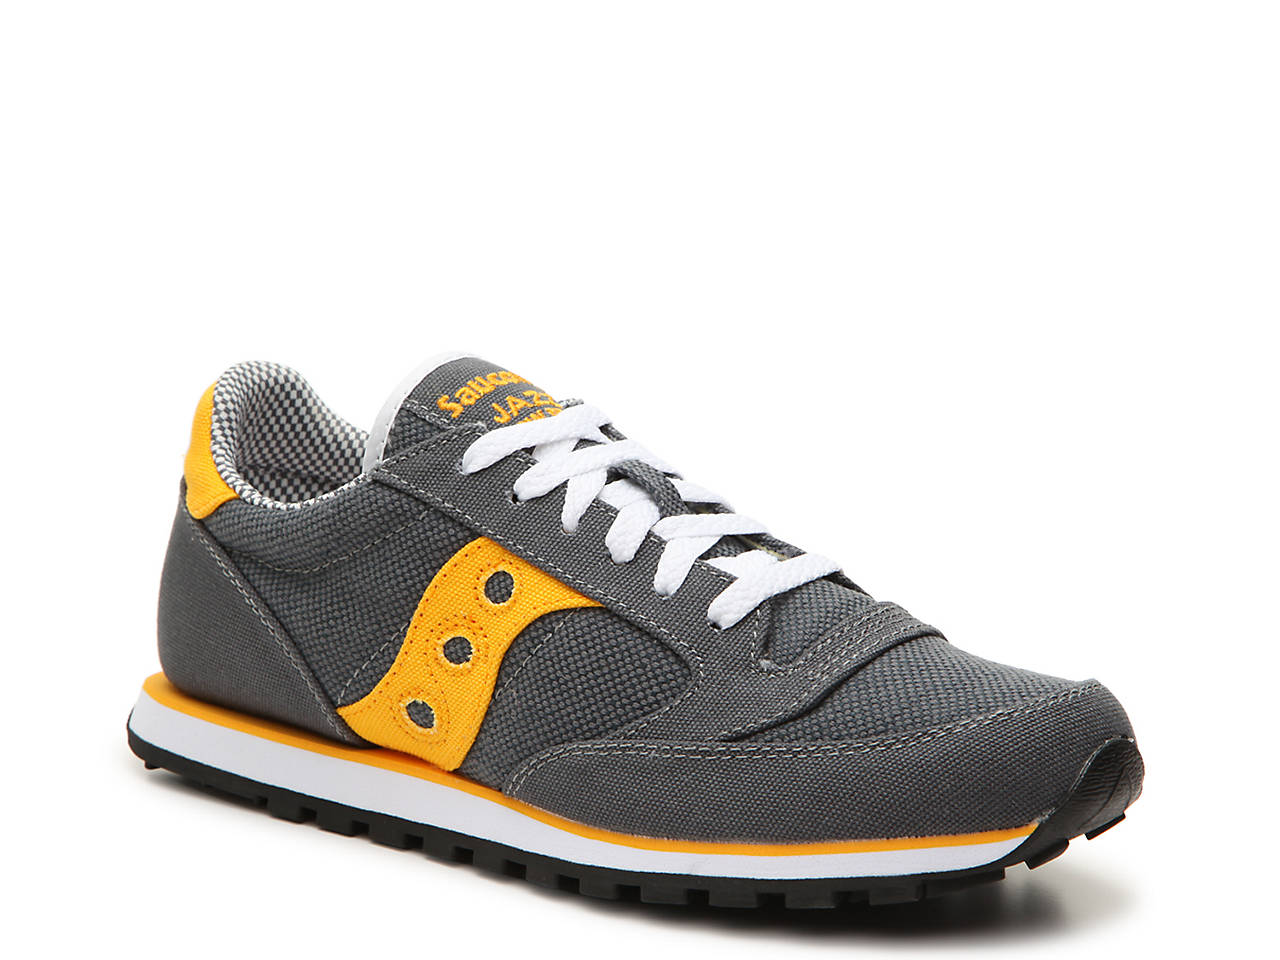 sports shoes 82c6b b32fa Jazz Low Pro Retro Sneaker - Men's